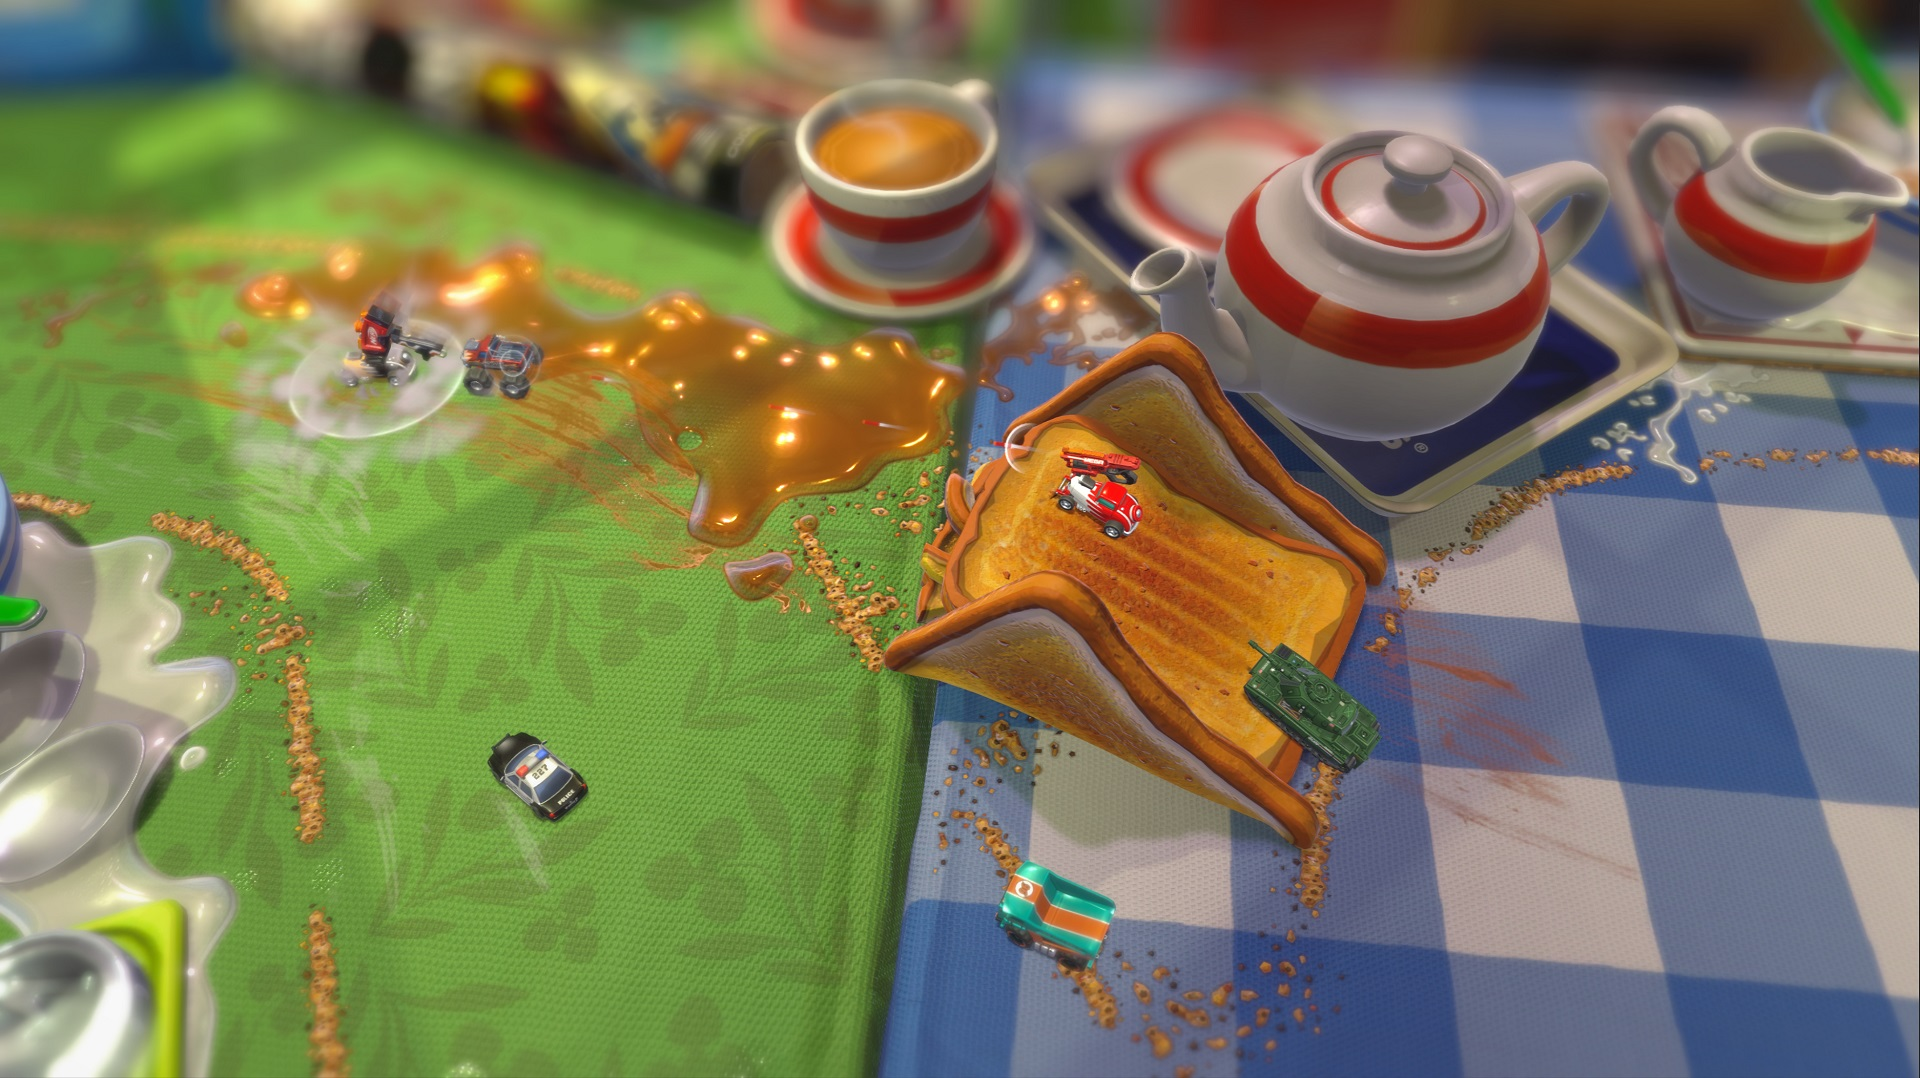 Here's our first big look at the new Micro Machines screenshot